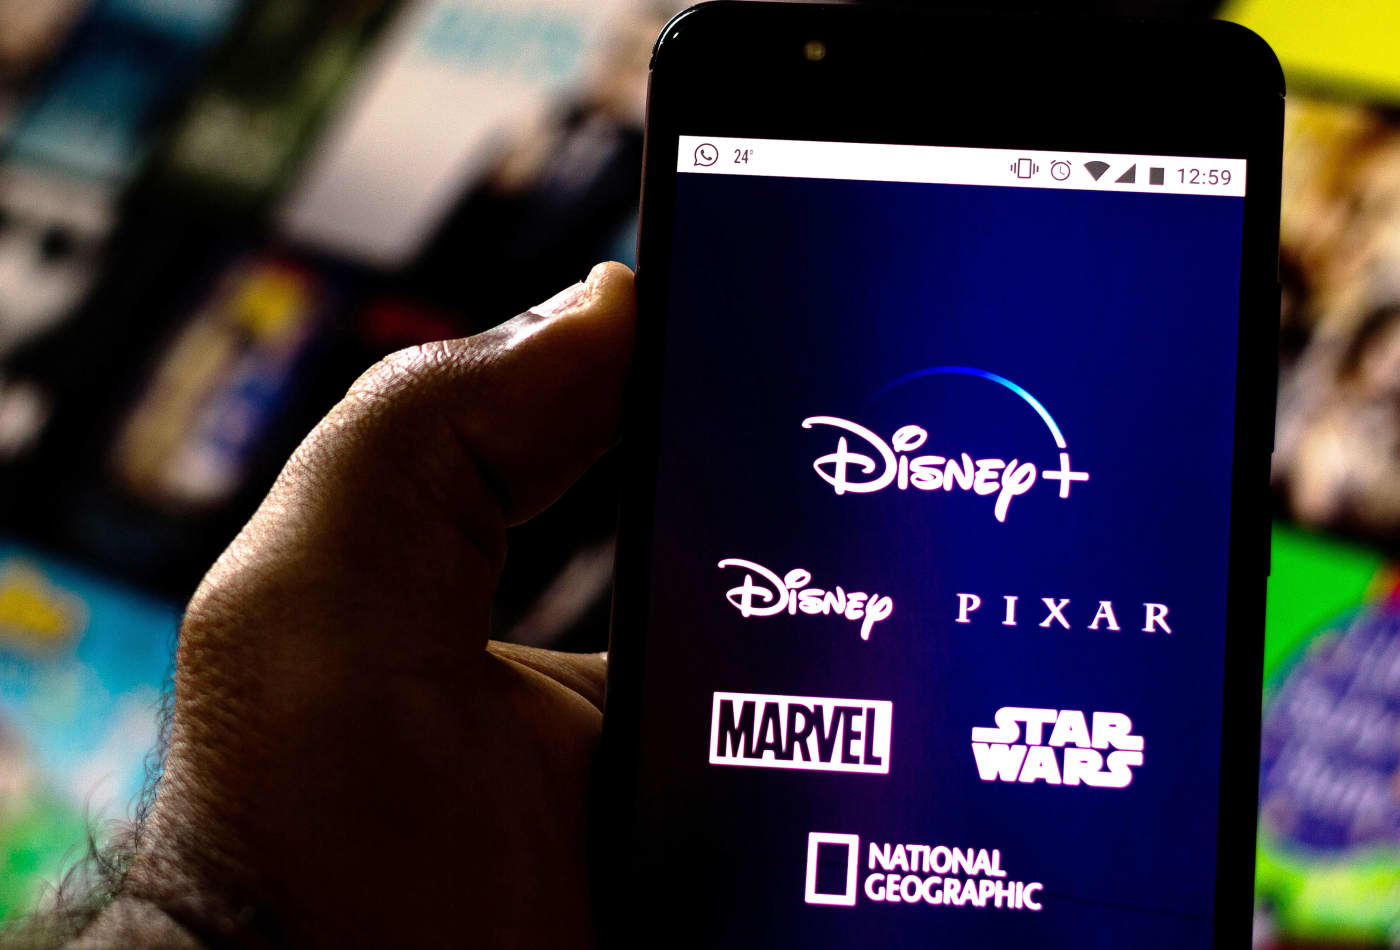 Disney+ is here: Take a first look at the app and everything you'll get